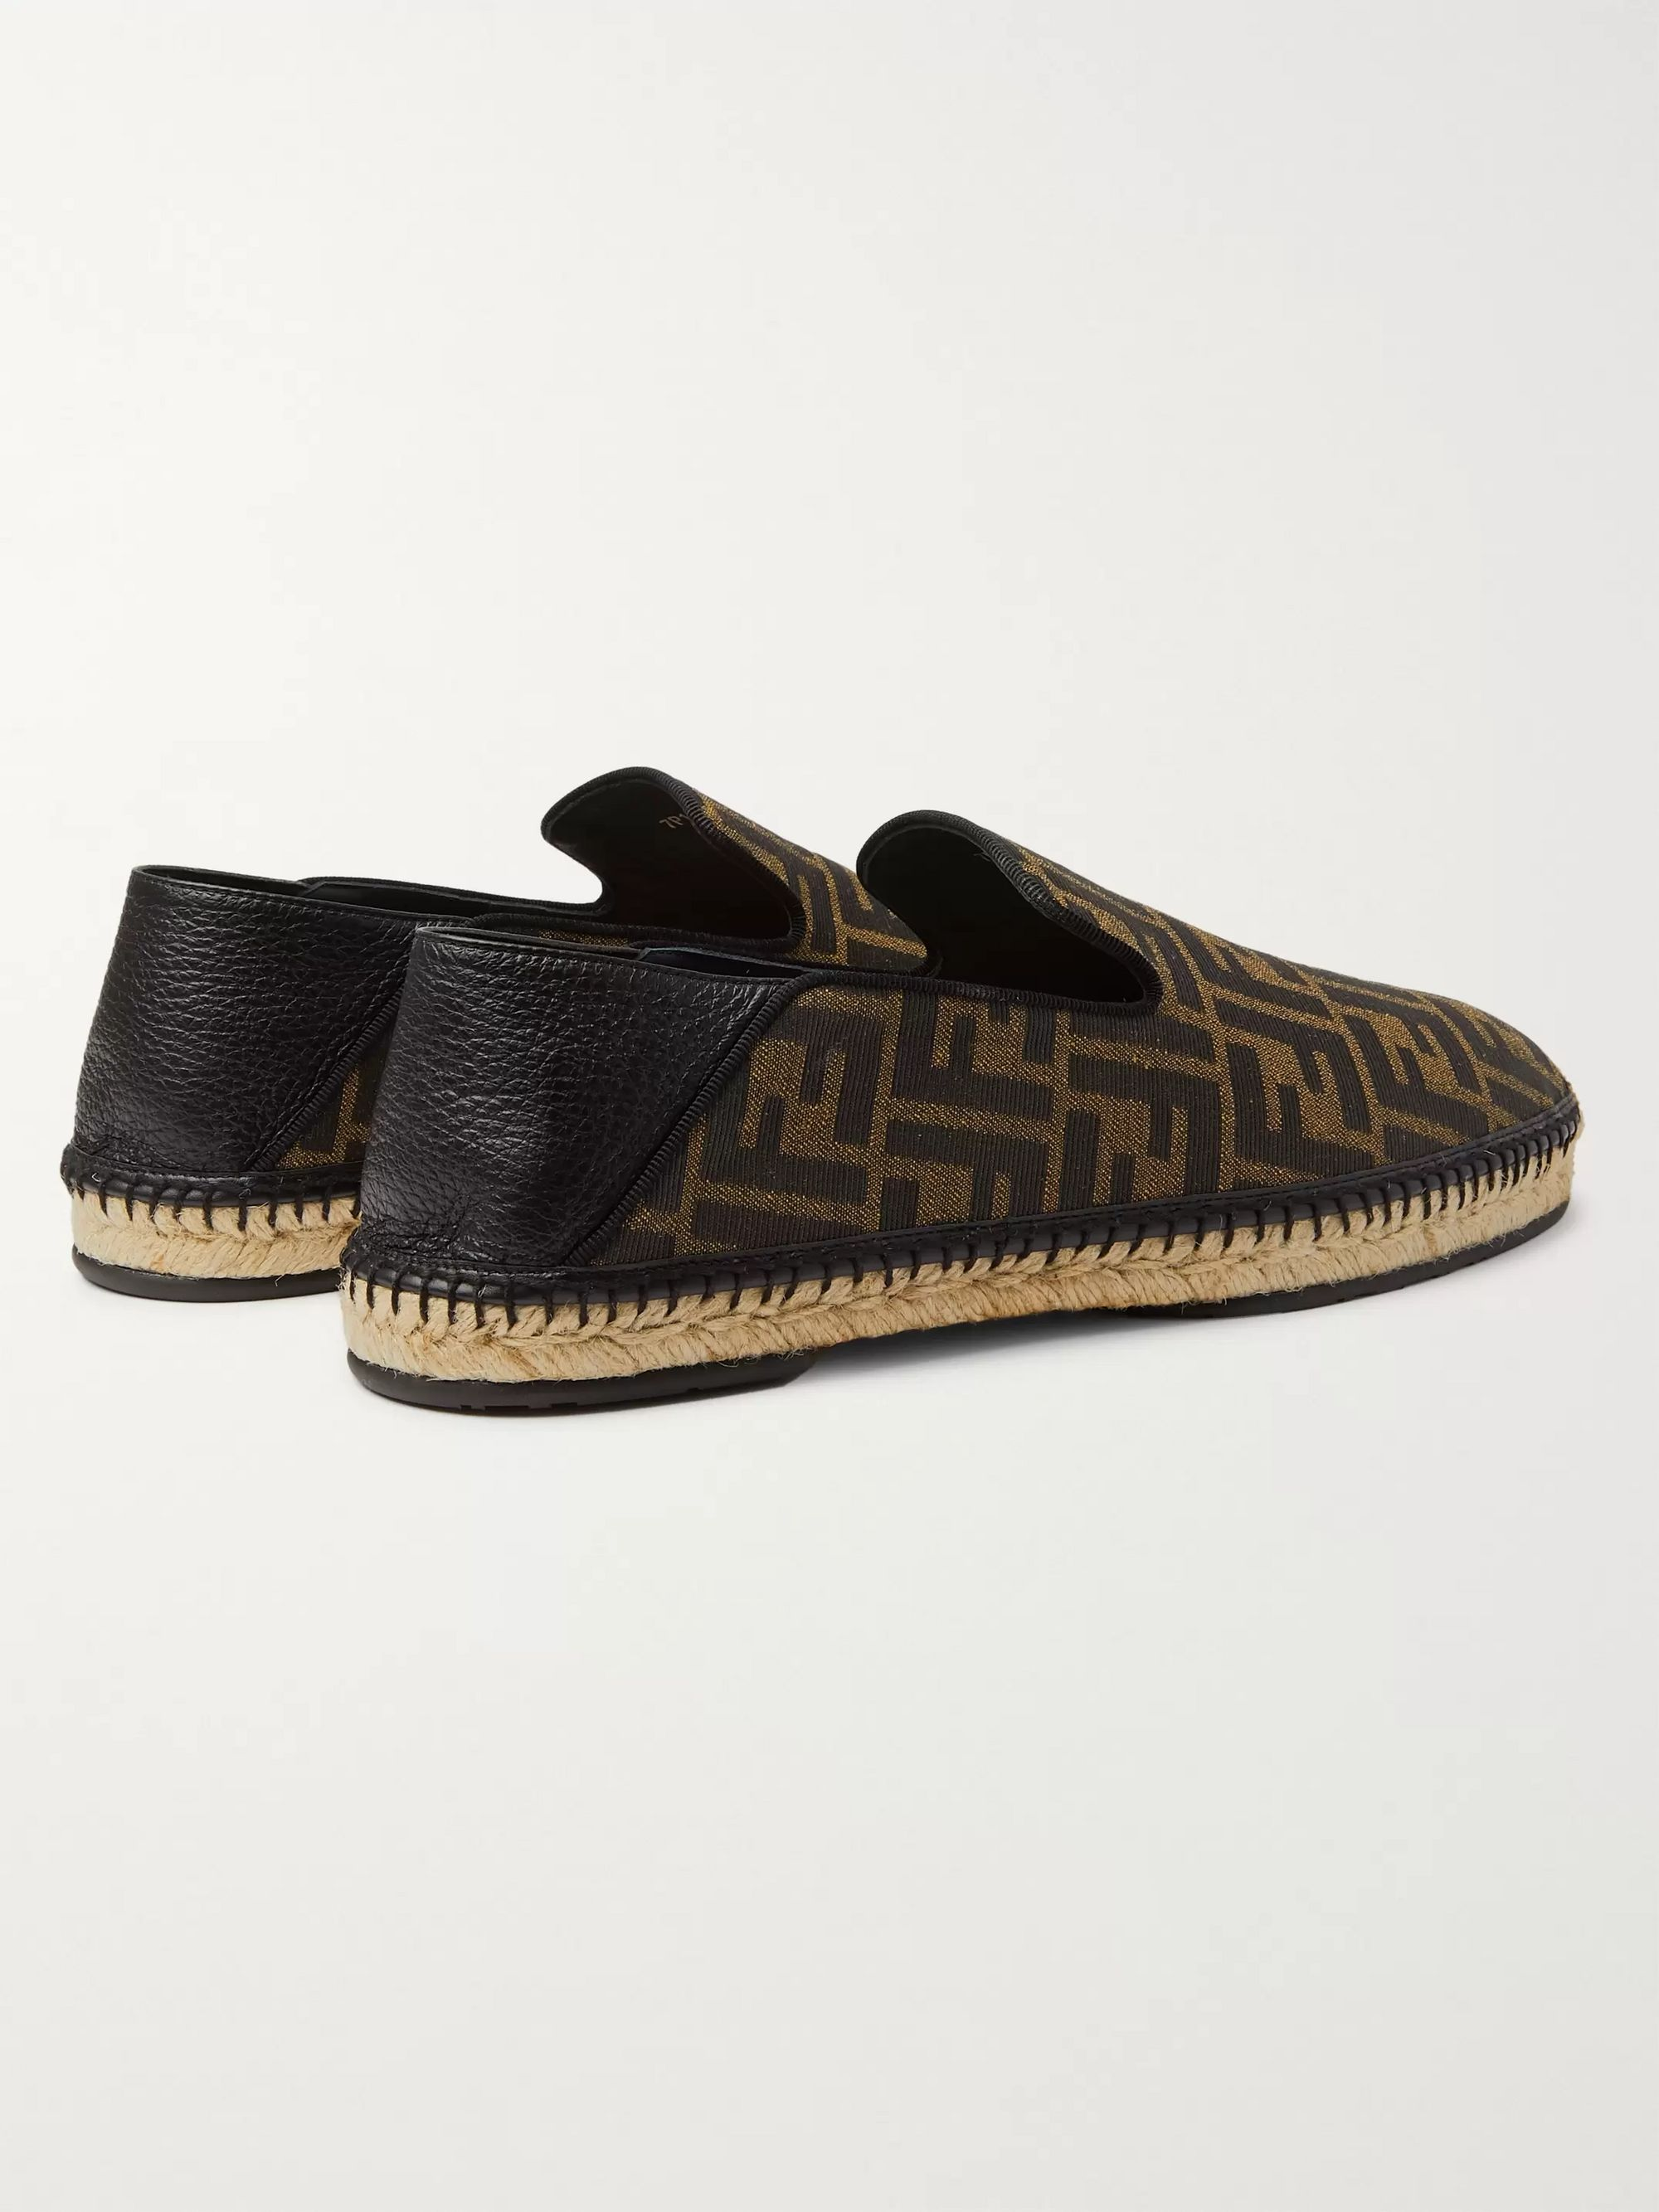 Fendi Collapsible-Heel Leather-Trimmed Logo-Print Canvas Espadrilles